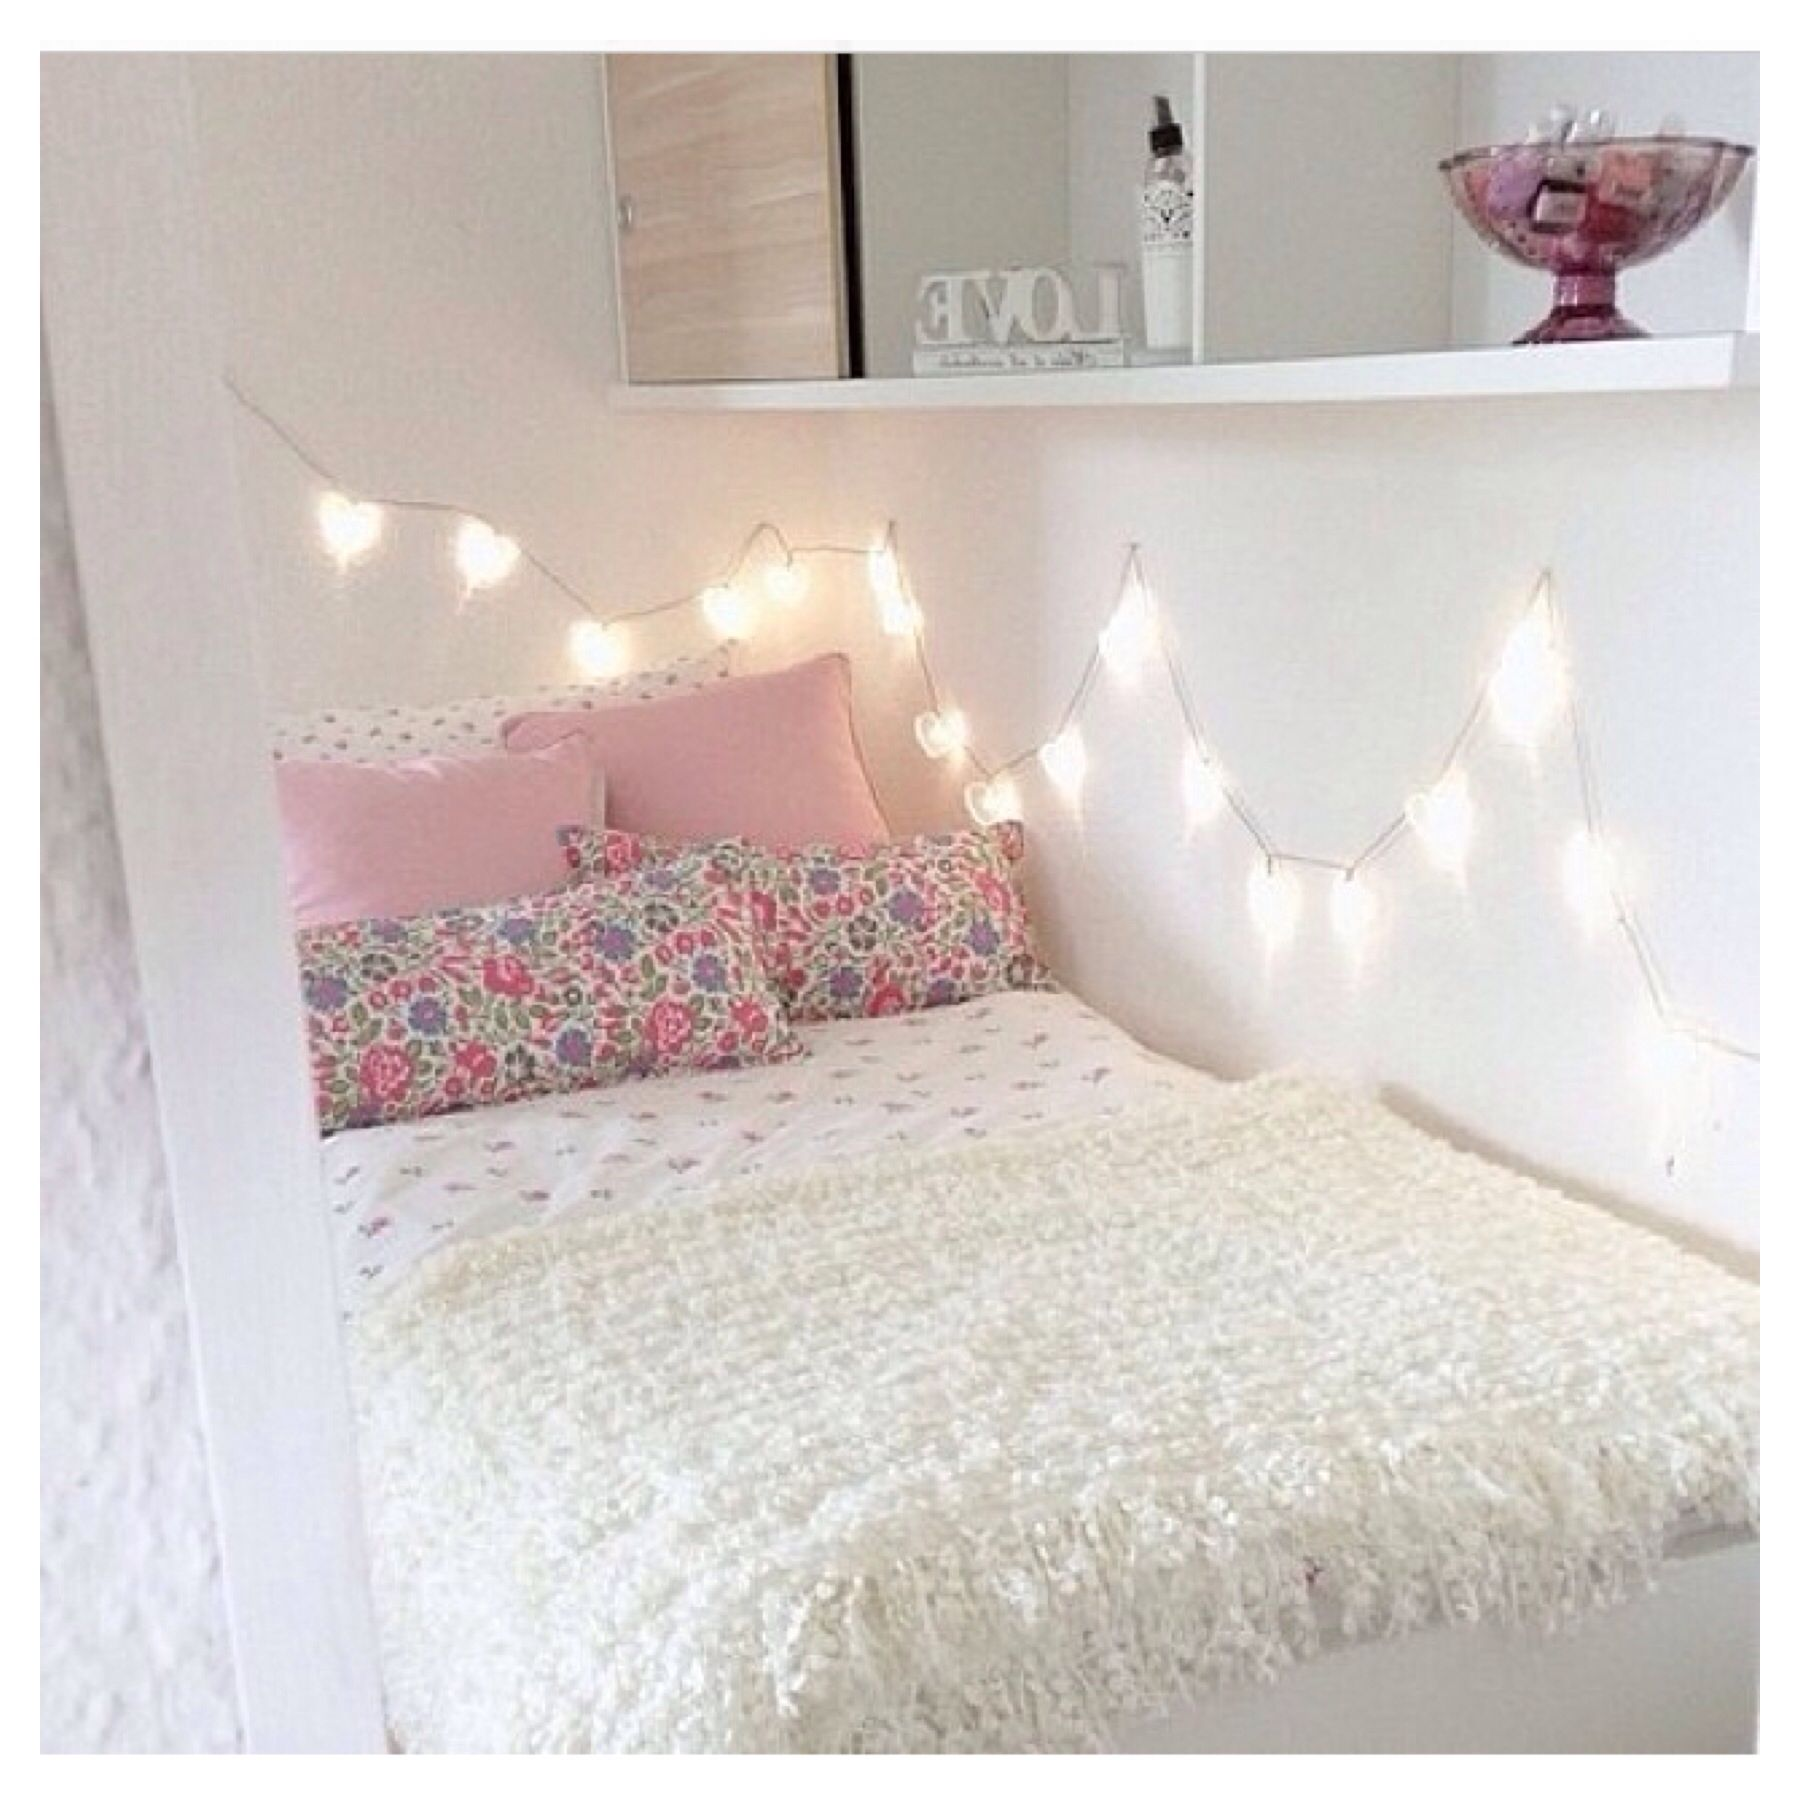 Fairy light room decor ideas for bedroom pinterest for Pretty bedroom accessories